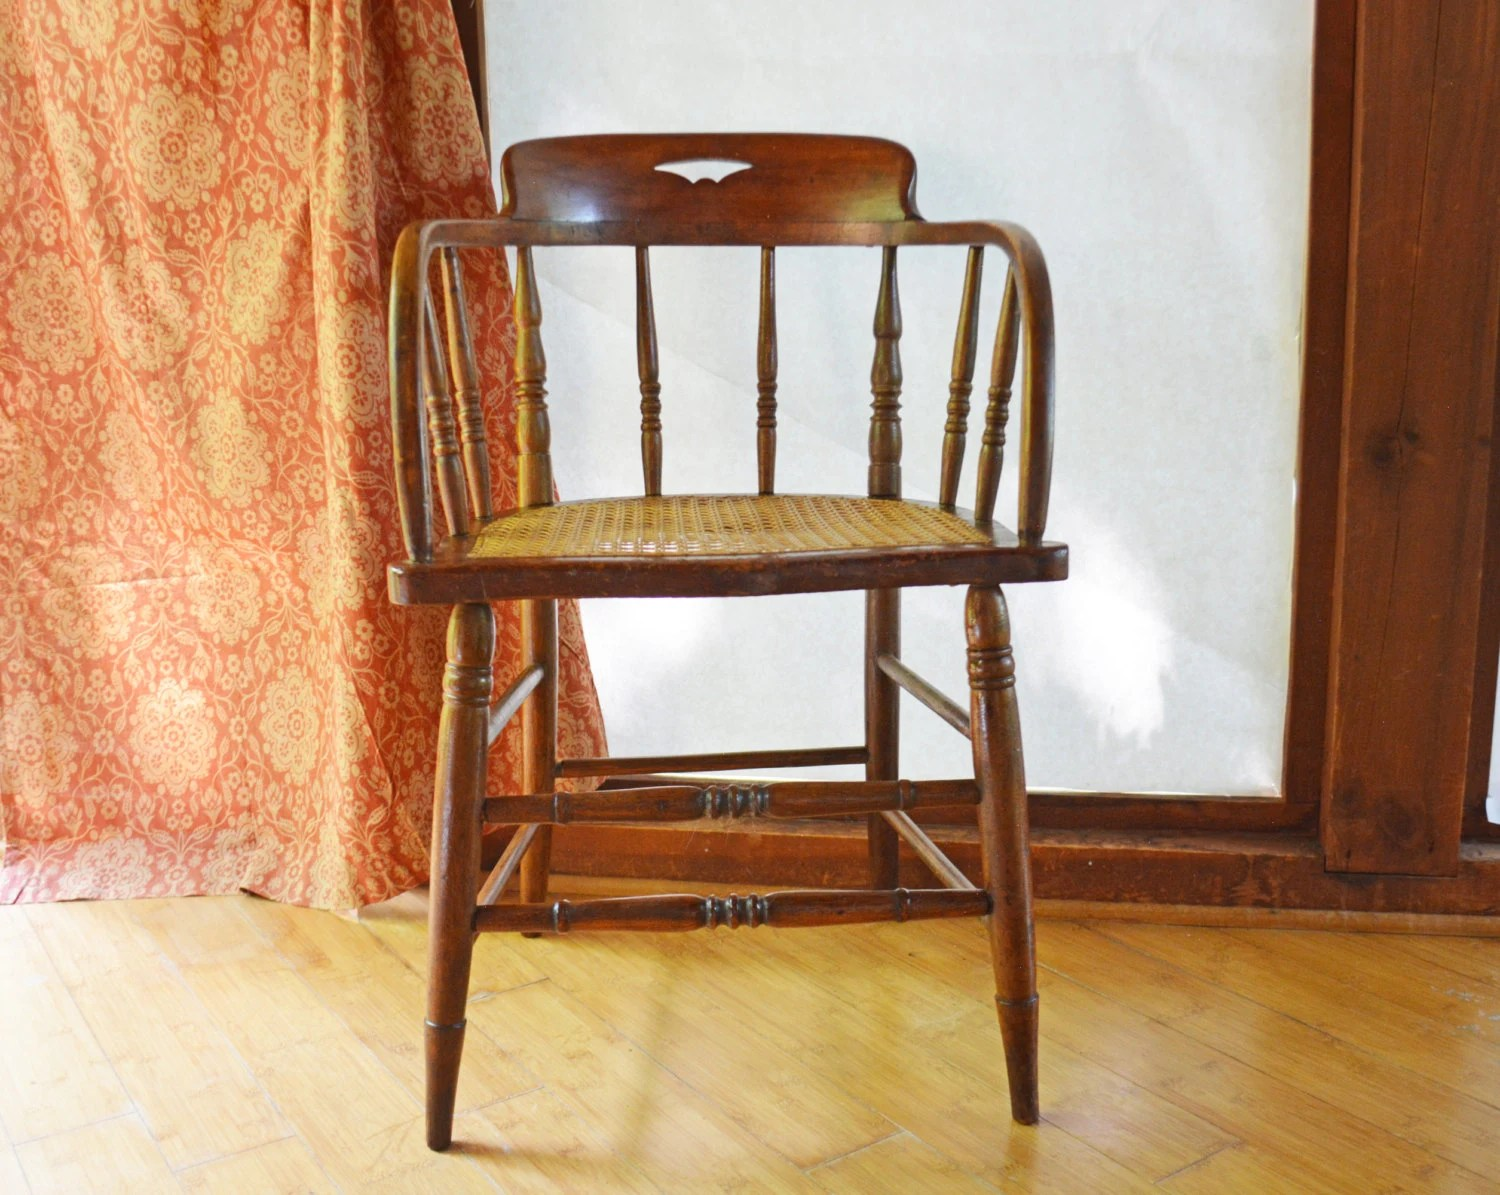 Wooden Chairs Antique Wood Chair Barrel Back Wooden Chair Small Captains